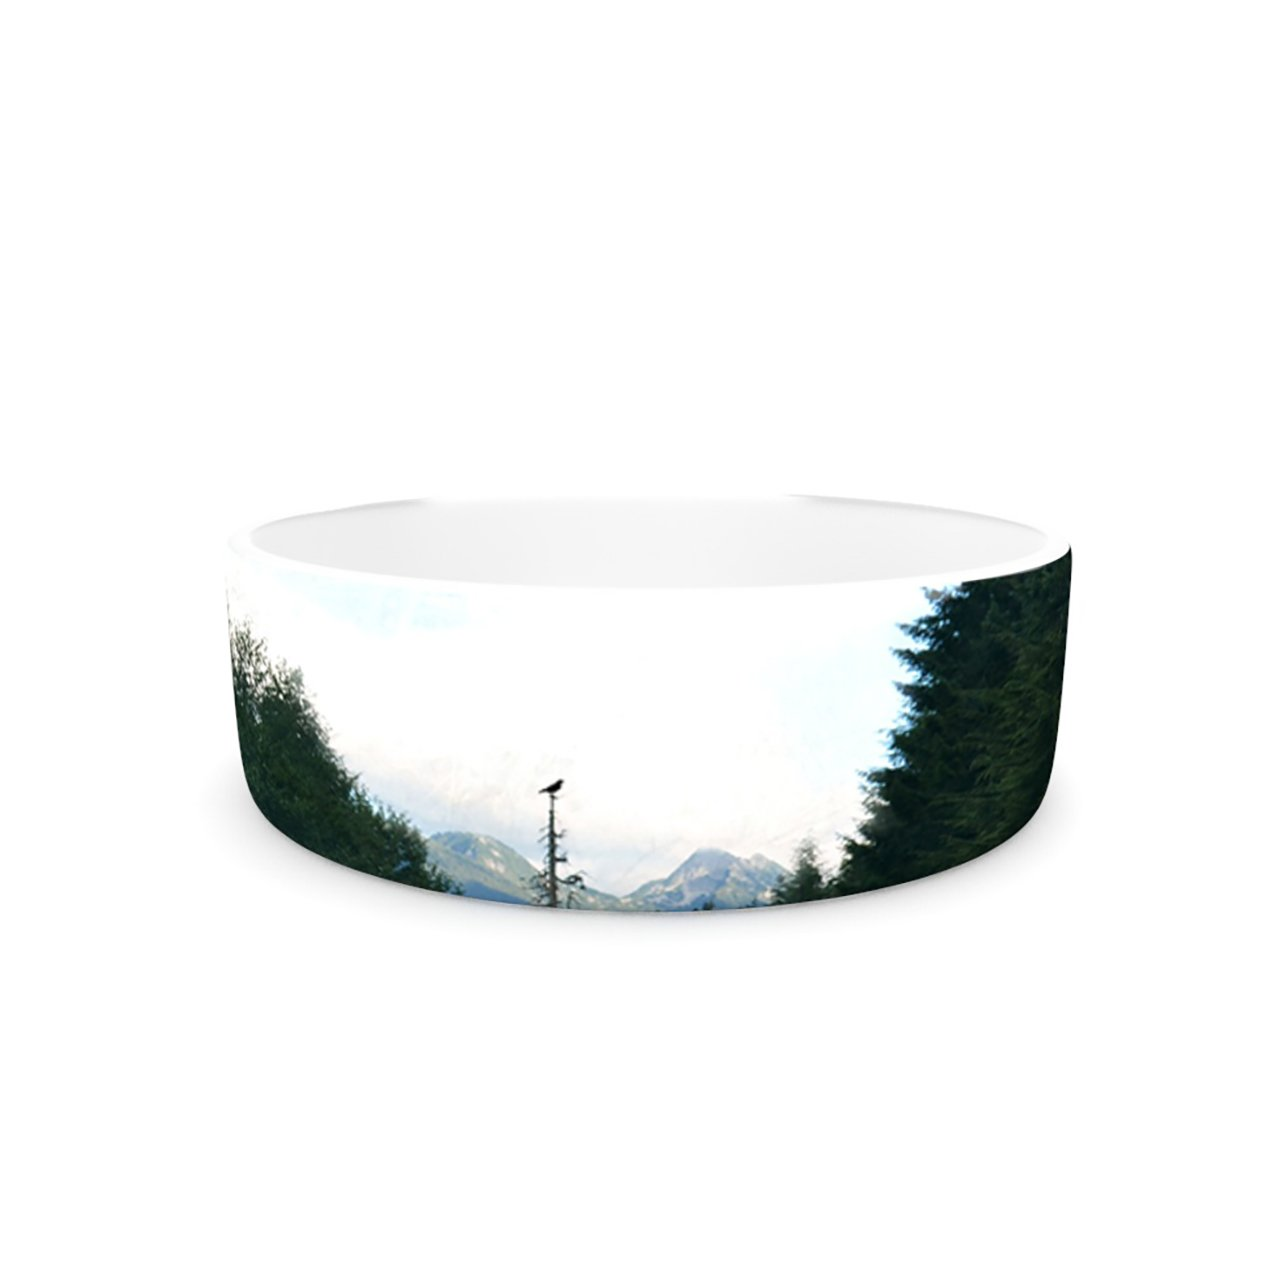 Kess InHouse Robin Dickinson Go Get Lost  Pet Bowl, 7-Inch, Forest Green